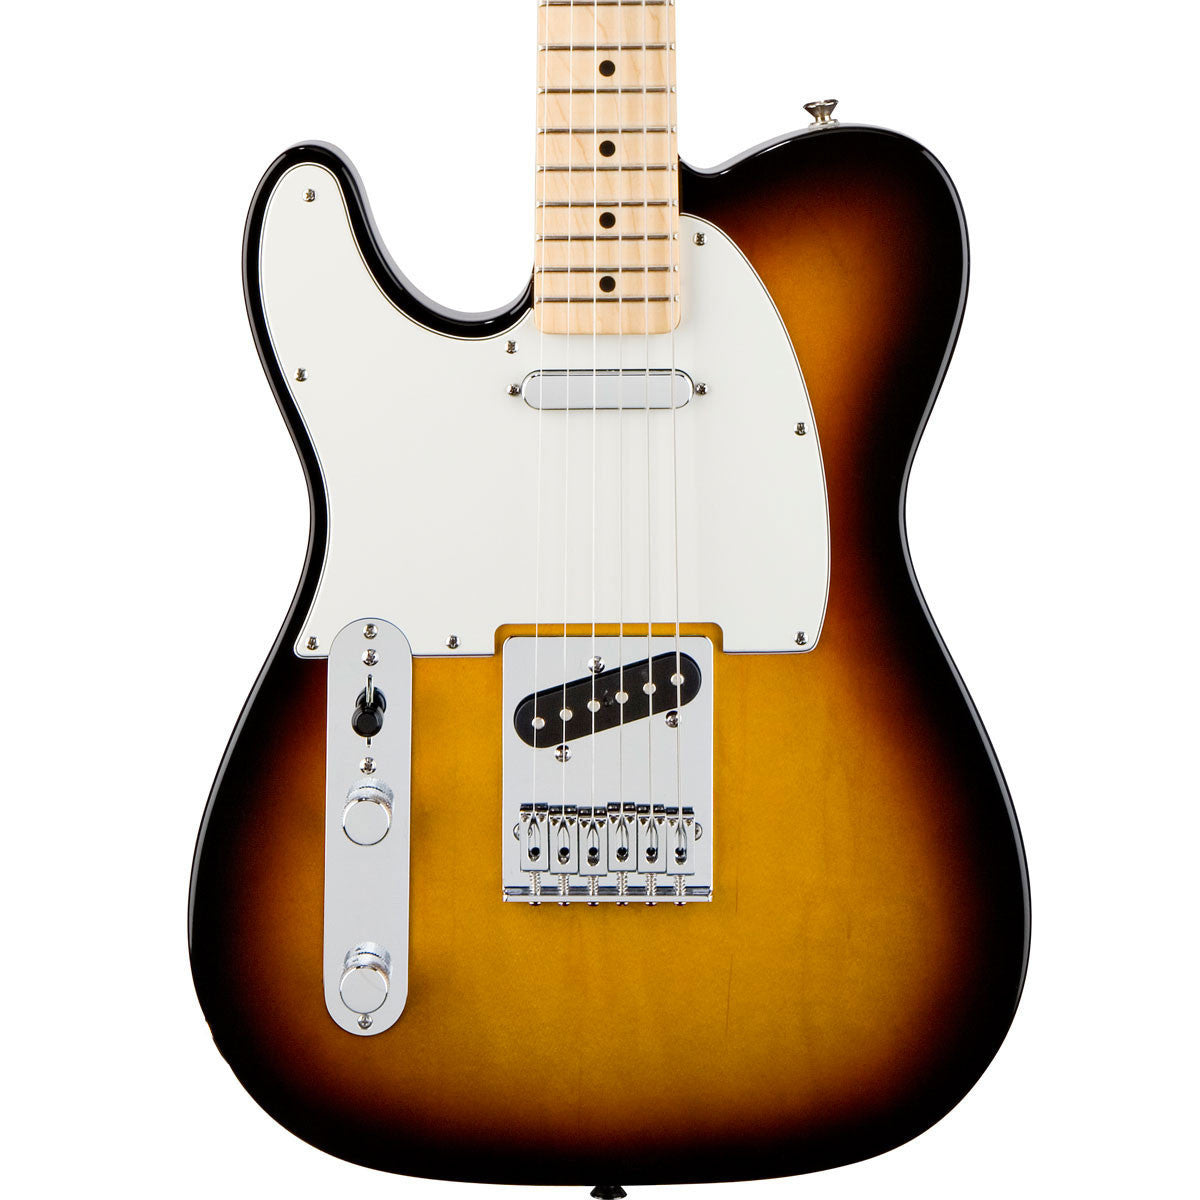 Fender Standard Telecaster - Maple - Brown Sunburst - Left Handed - Vintage Guitar Boutique - 1